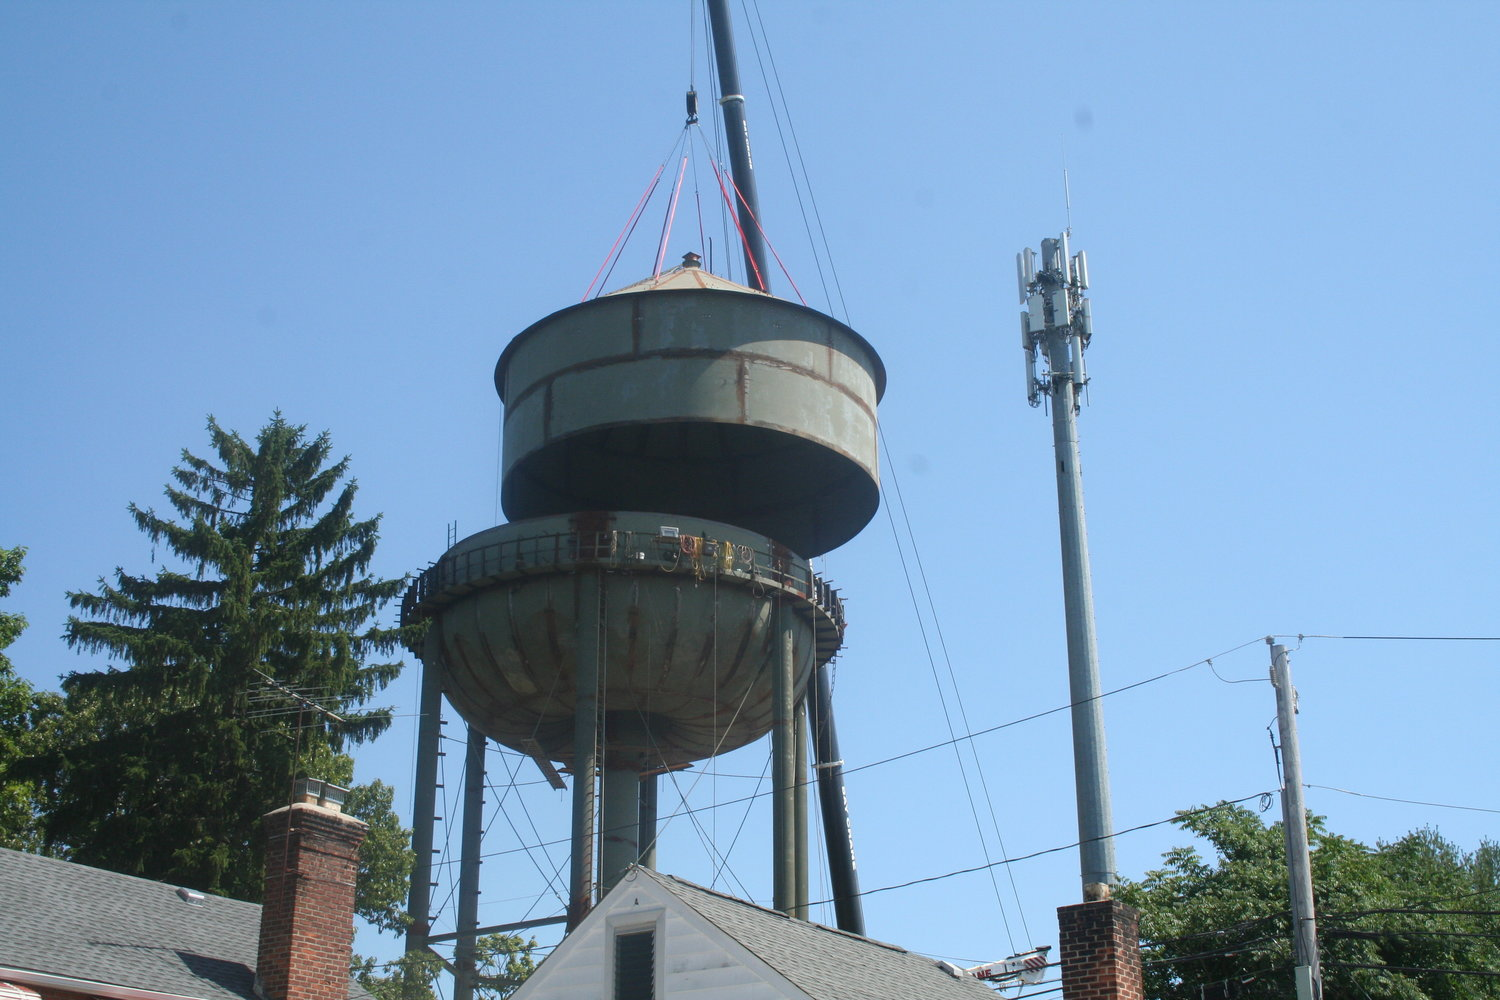 The new water tank in Glen Head replaces one that had sat atop the Dumond Place water tower for nearly a century.